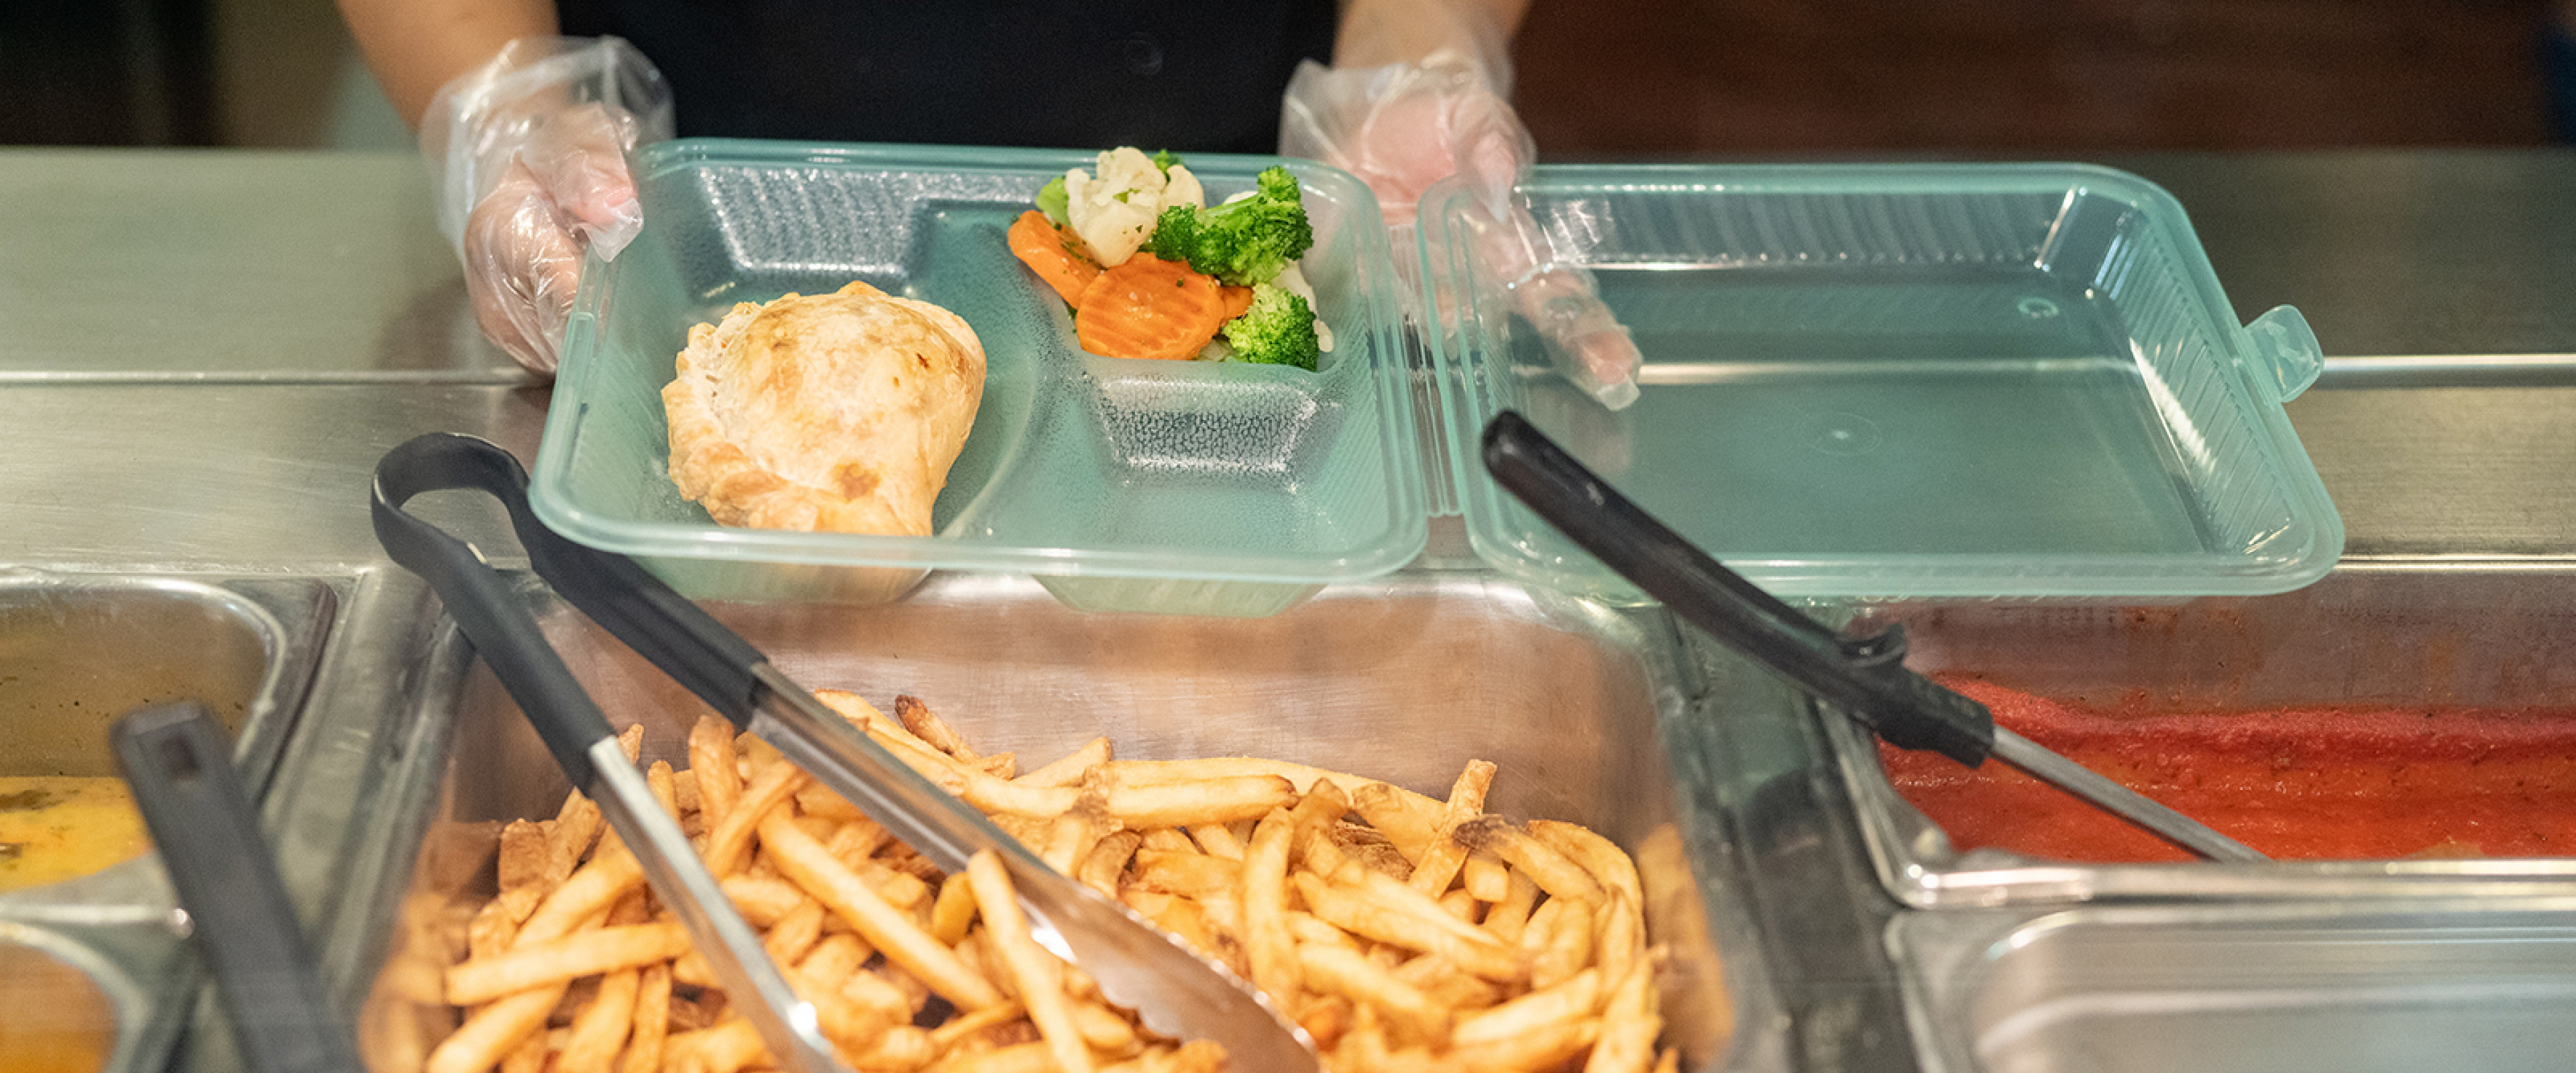 Reusable Container with chicken, veggies and french fries